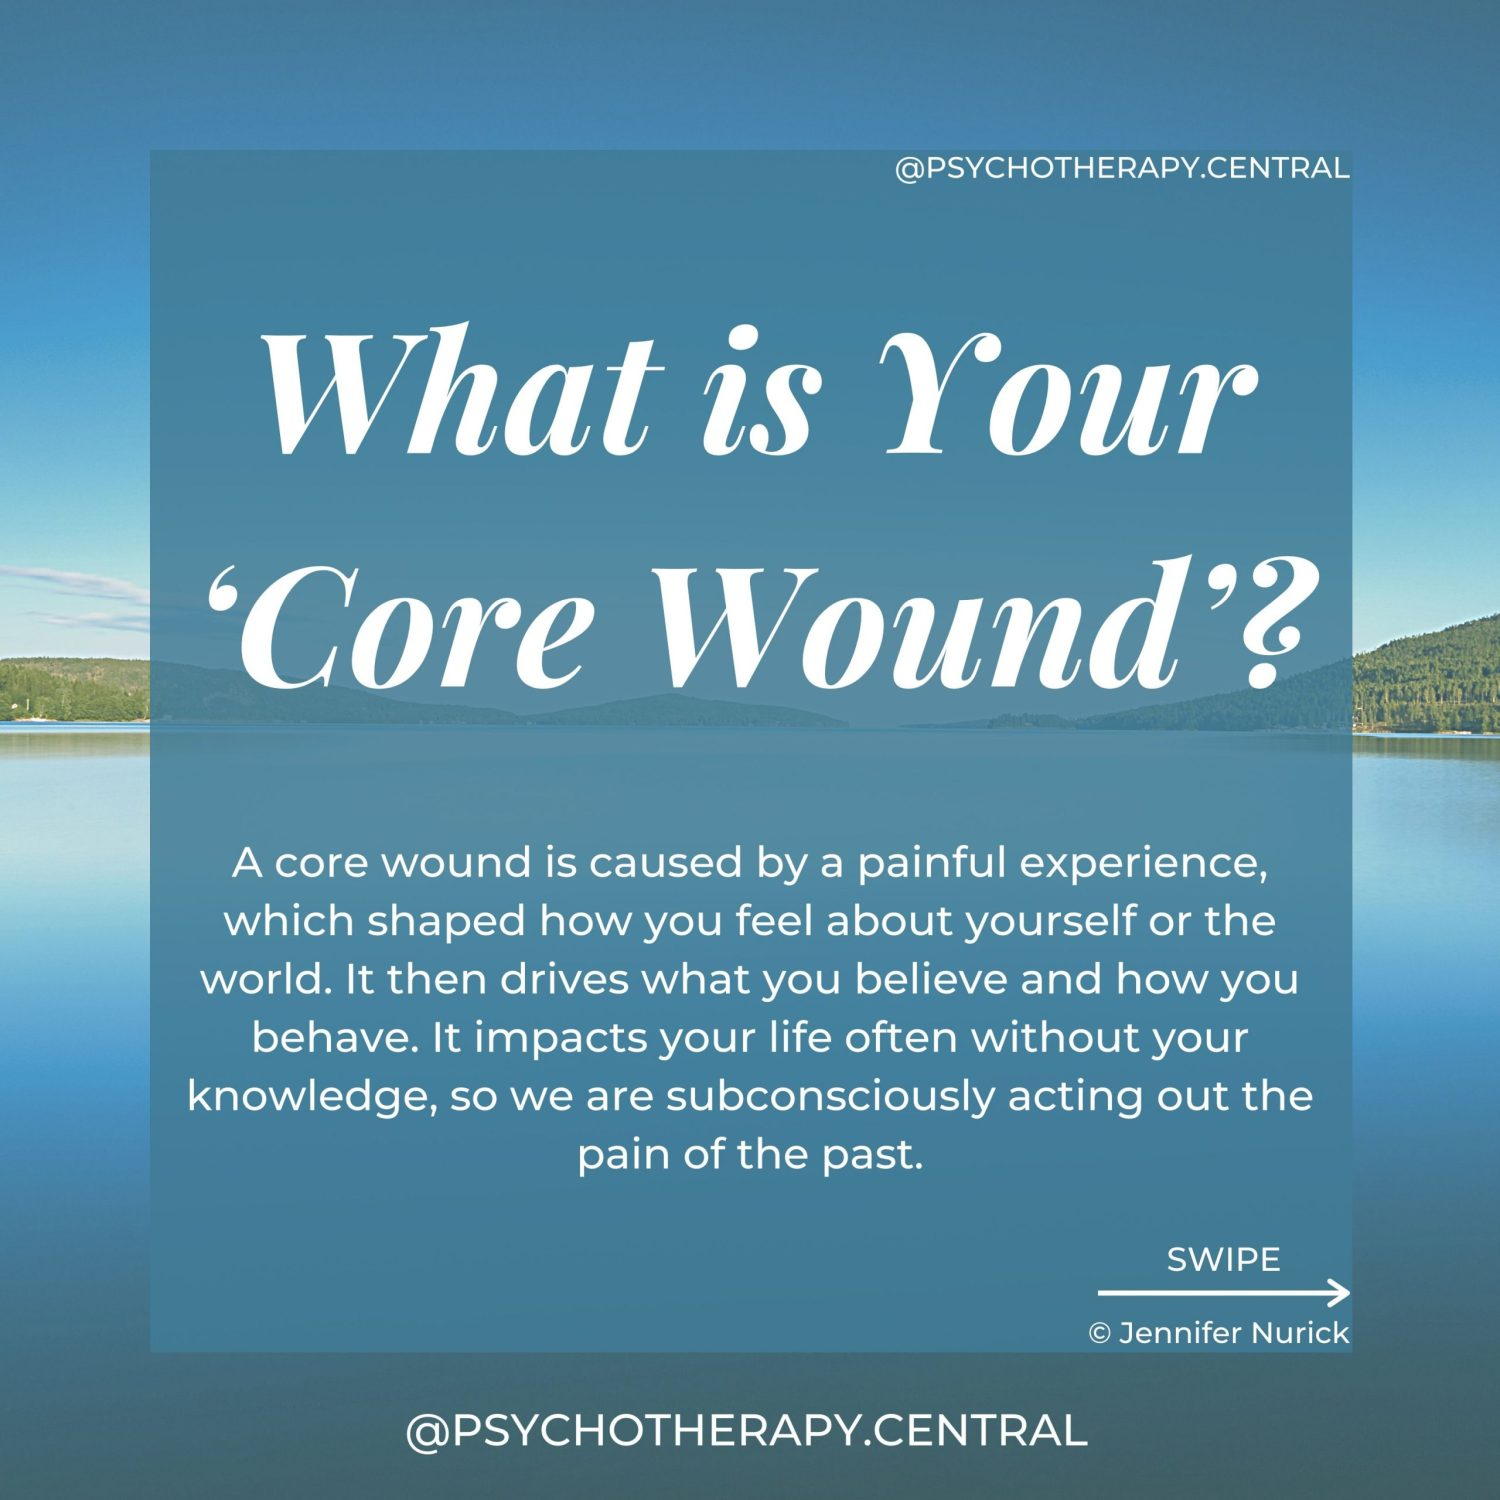 what is your core wound?